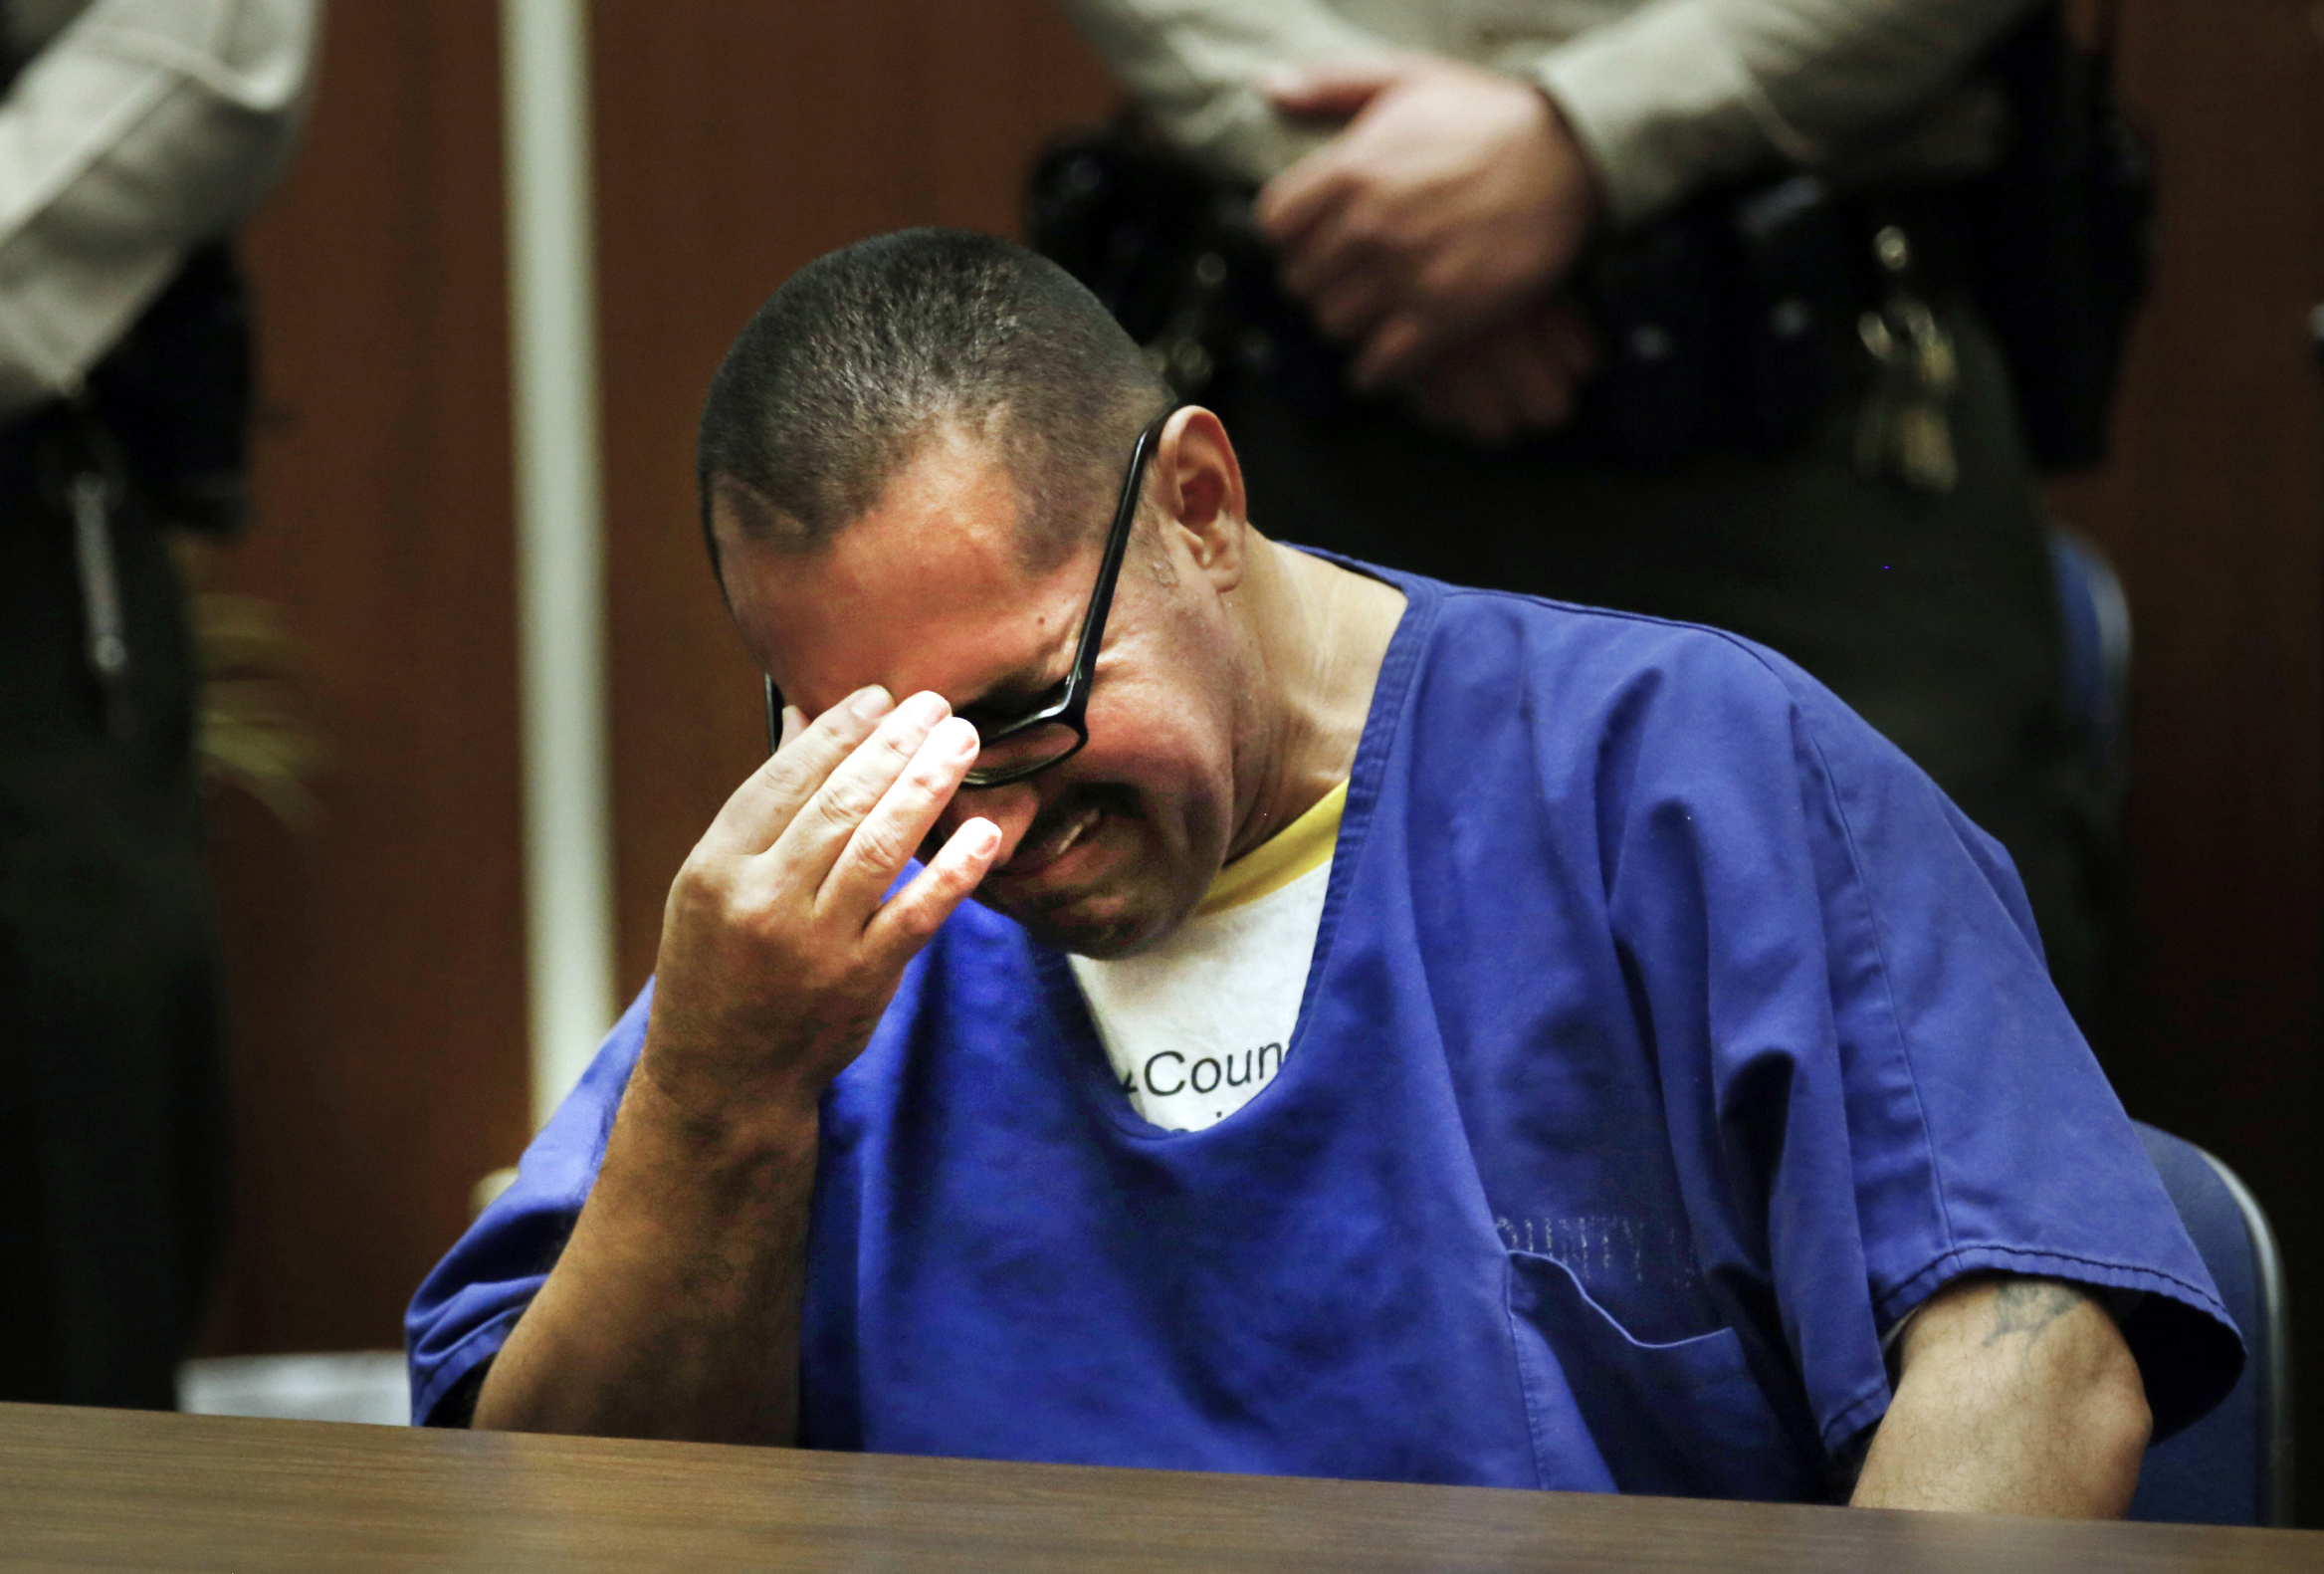 Luis Vargas, who had been in prison for 16 years, reacts in court as he is exonerated, Nov. 23, 2015, in Los Angeles